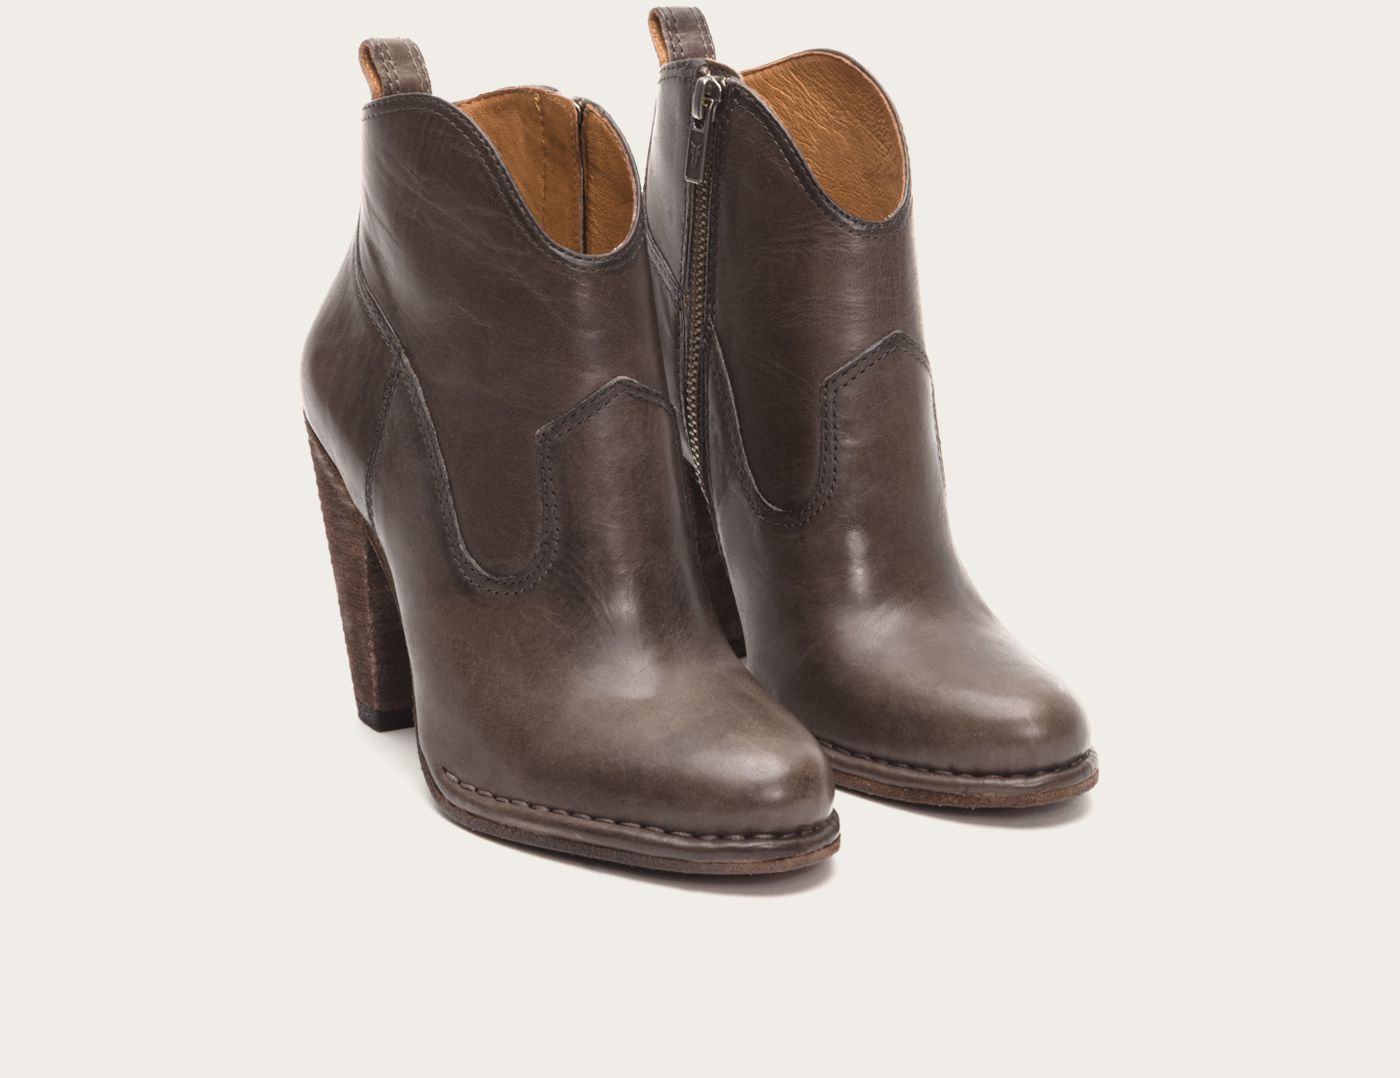 Frye-Madeline Short Ankle Boots (smoke leather)